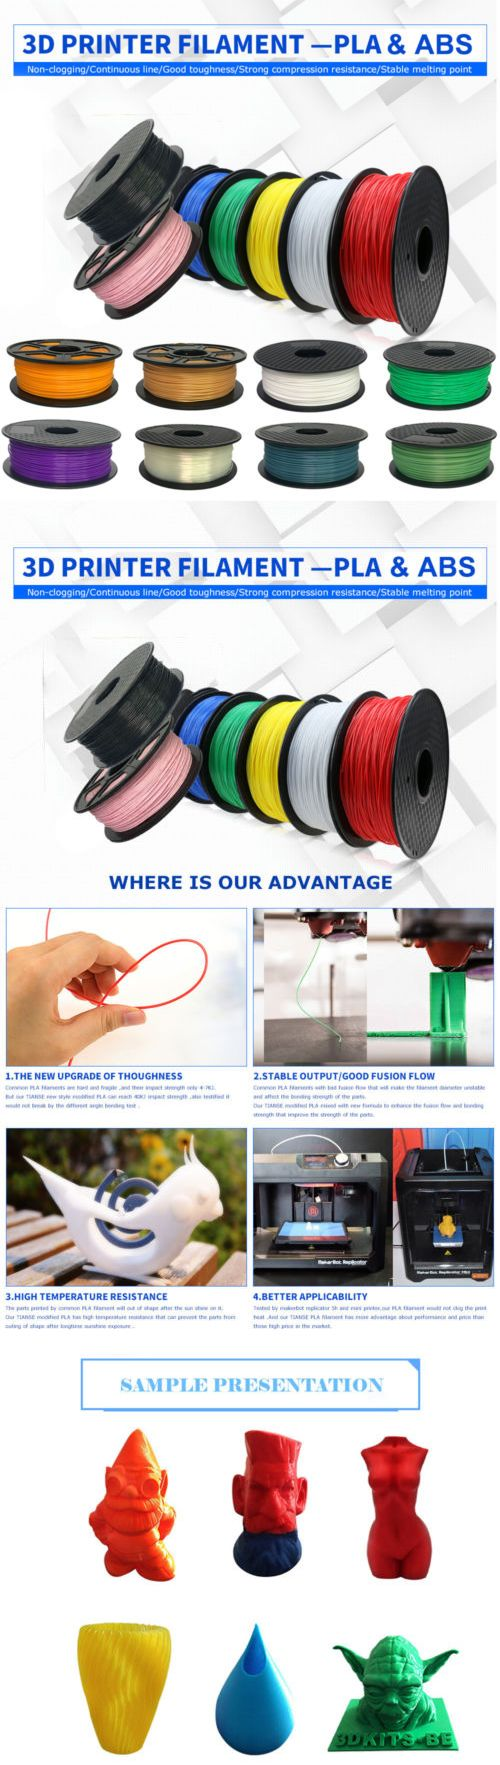 3d Printers And Supplies 183062 Premium Printer Filament 1kg 22 Stable Supply 22lb 175mm 3mm Pla Abs Non Toxic Eco Friendly Buy It Now Only 1475 On Ebay